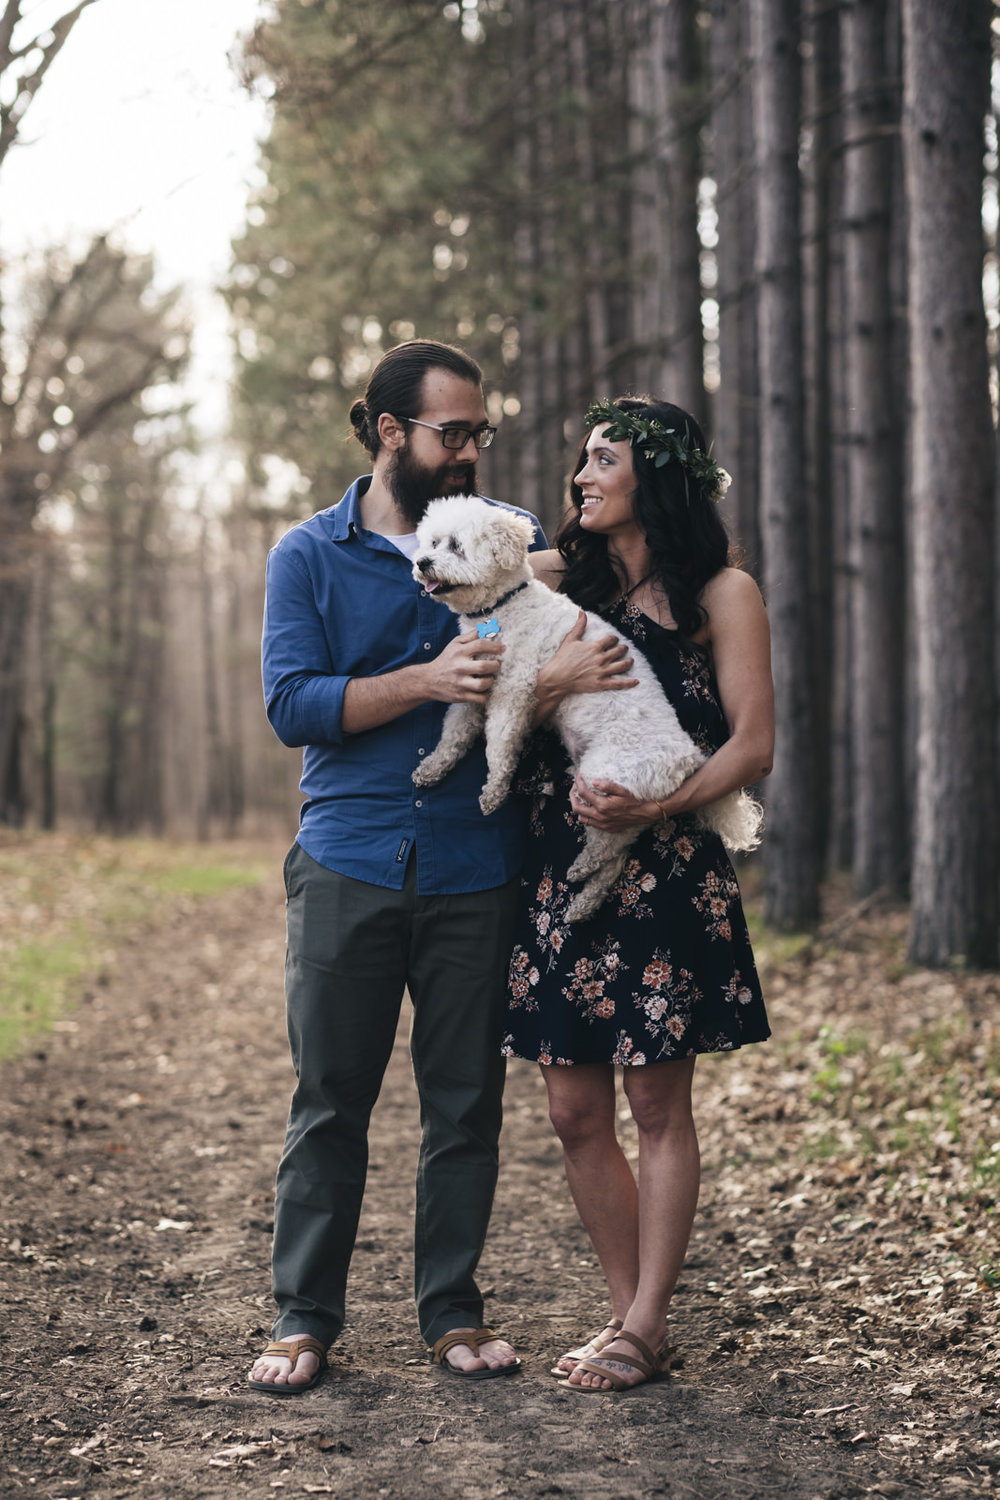 Cute engagement photo with dog in Ohio.